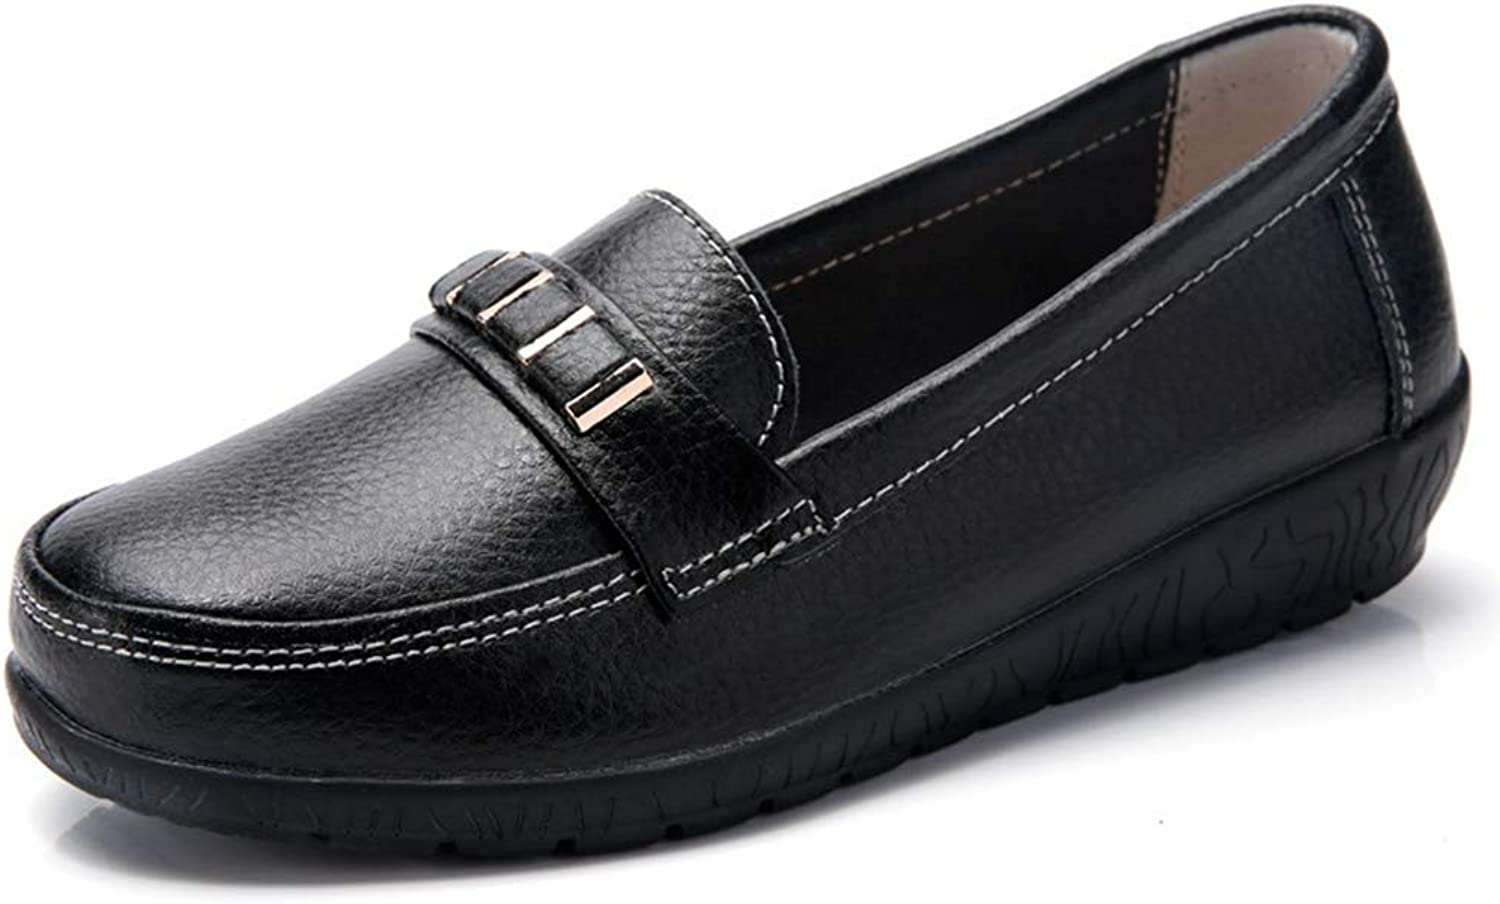 BMTH Women's Leather Loafers Casual Slip On Cowhide Round Toe Moccasins Comfort Driving Flats Boat shoes Oxford Loafer